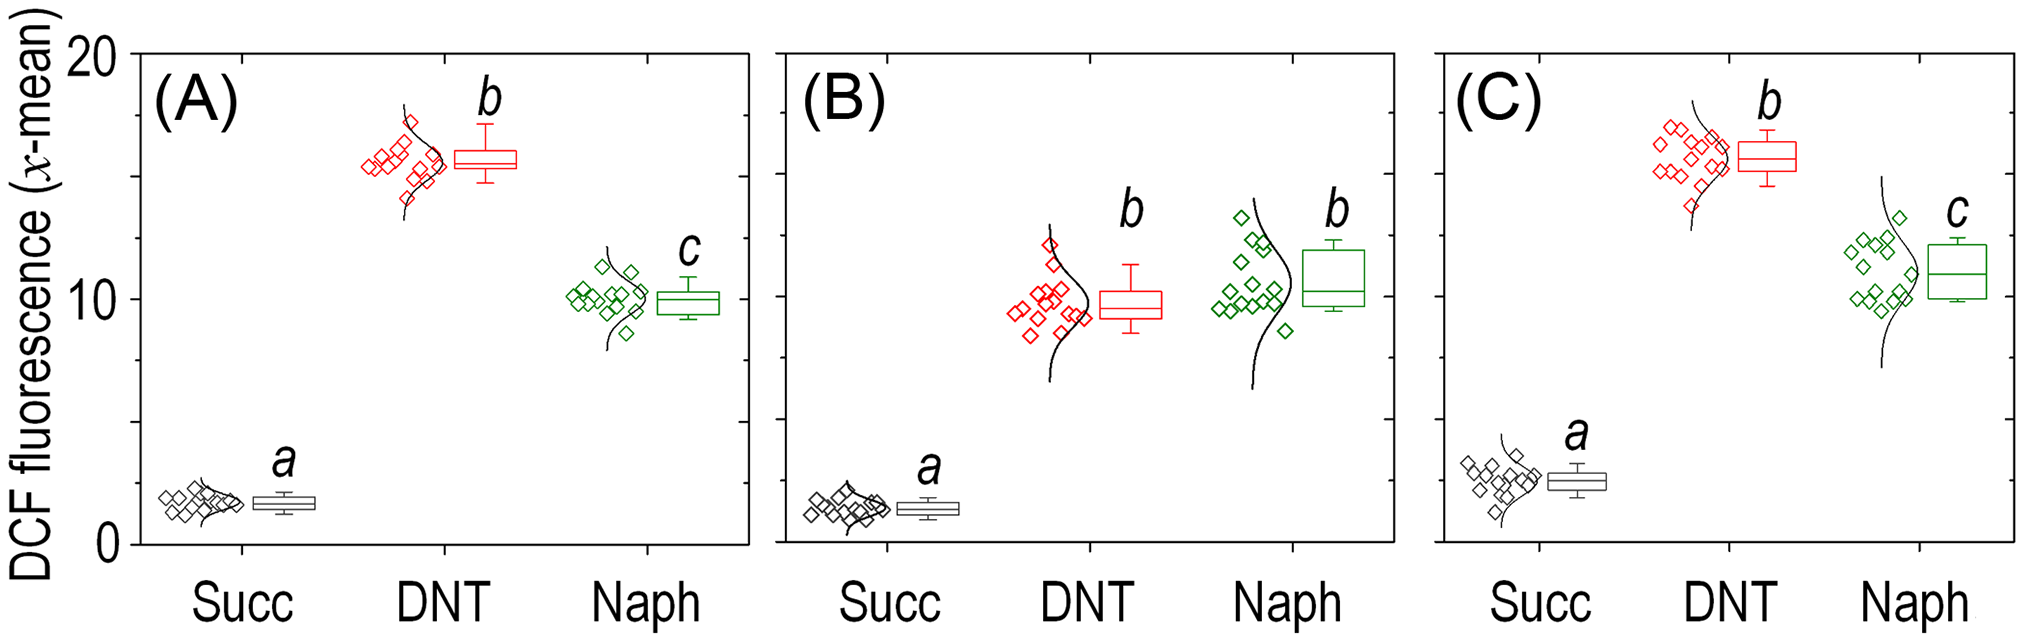 Quantitative analysis of ROS production in <i>Burkholderia</i> sp. DNT upon exposure to DNT or naphthalene.